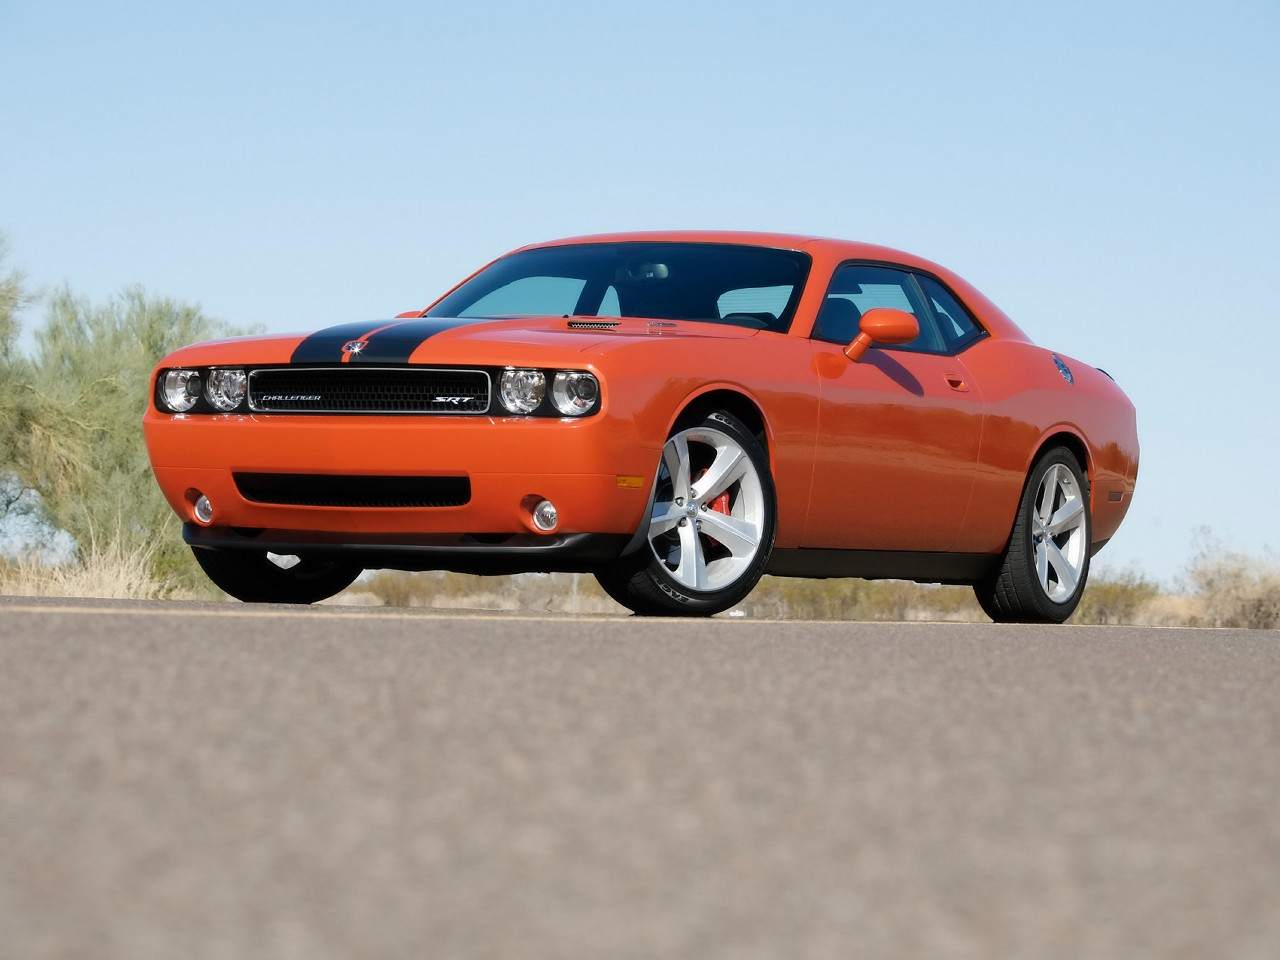 2010 Dodge Challenger SRT8 HD Wallpapers Images Pictures 1280x960